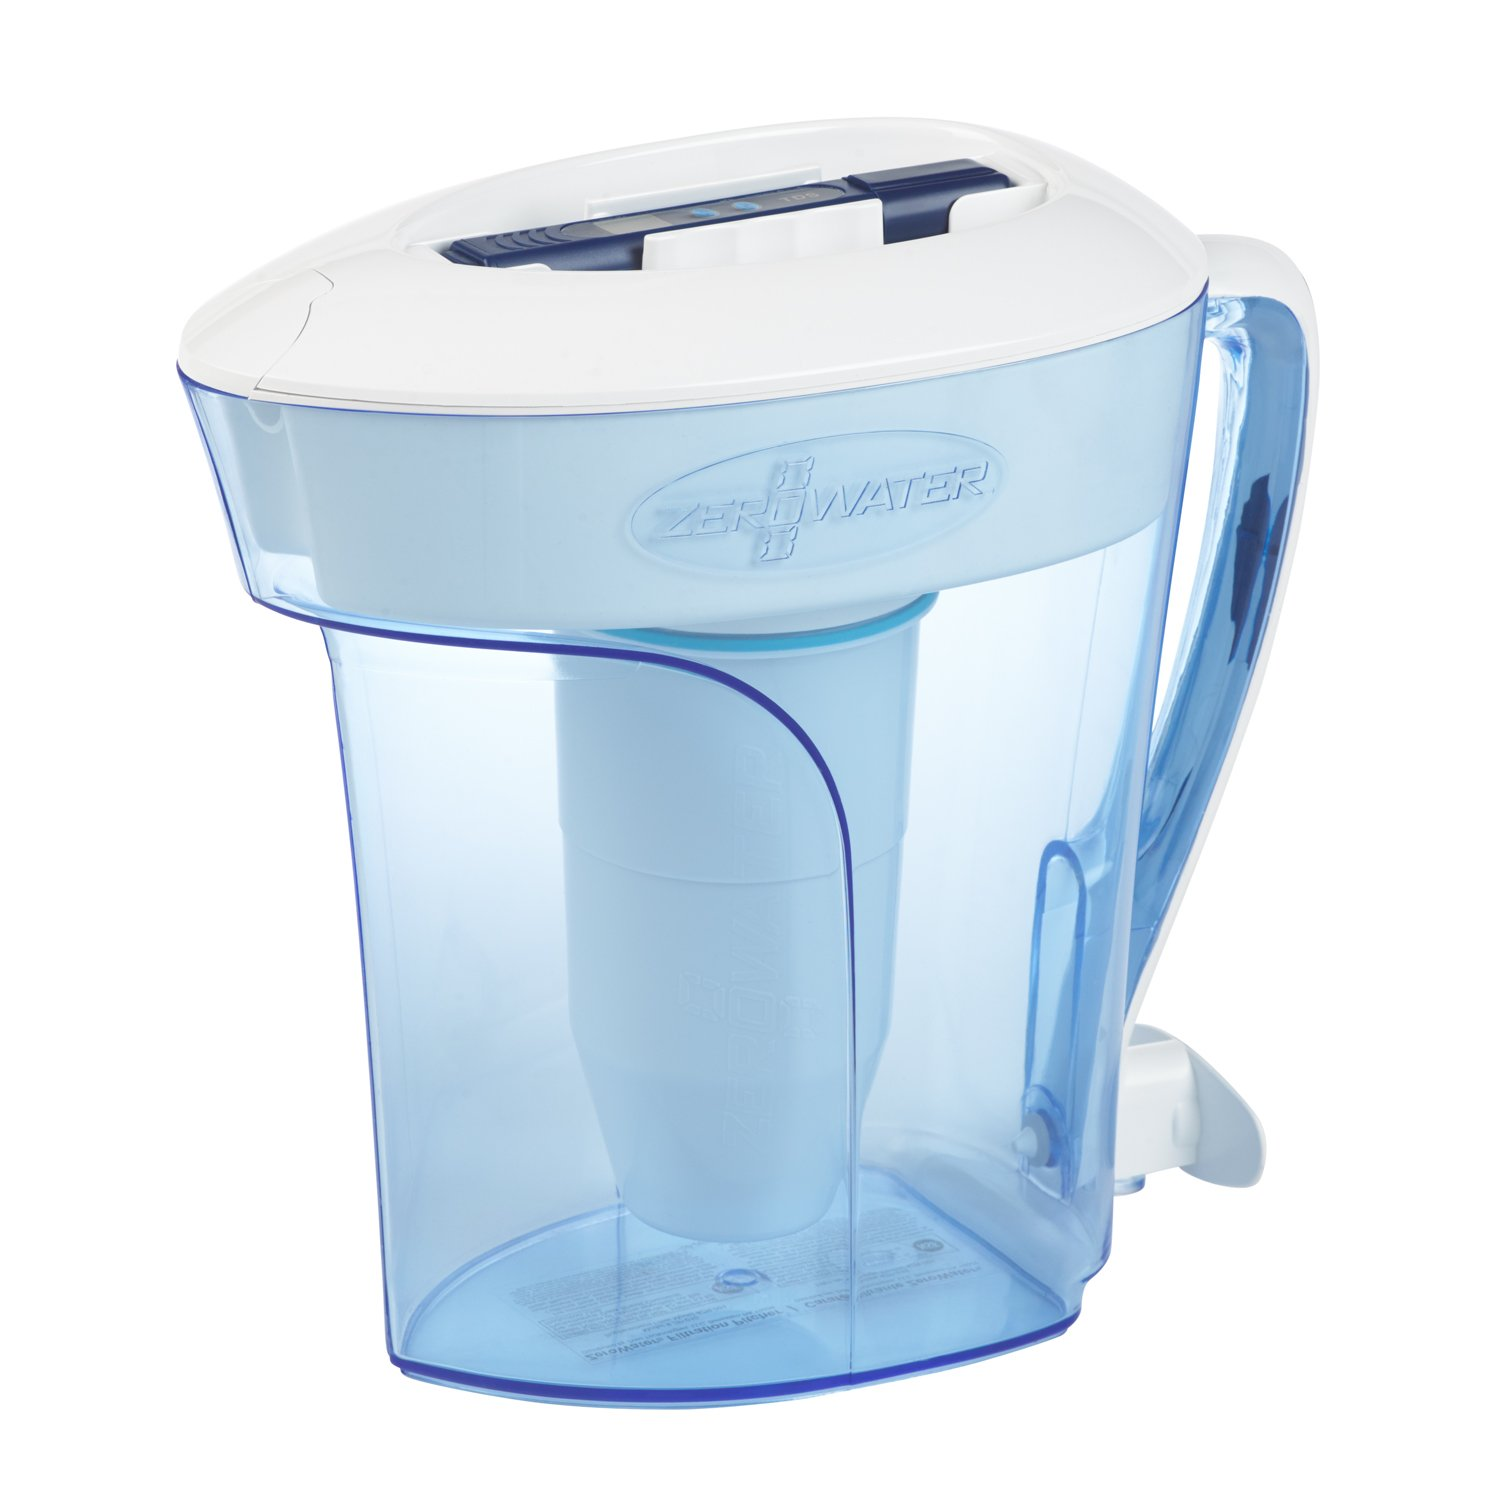 ZeroWater 10 Cup Pitcher with Free Water Quality Meter BPA-Free NSF Certified to Reduce Lead and Other Heavy Metals ZP-010